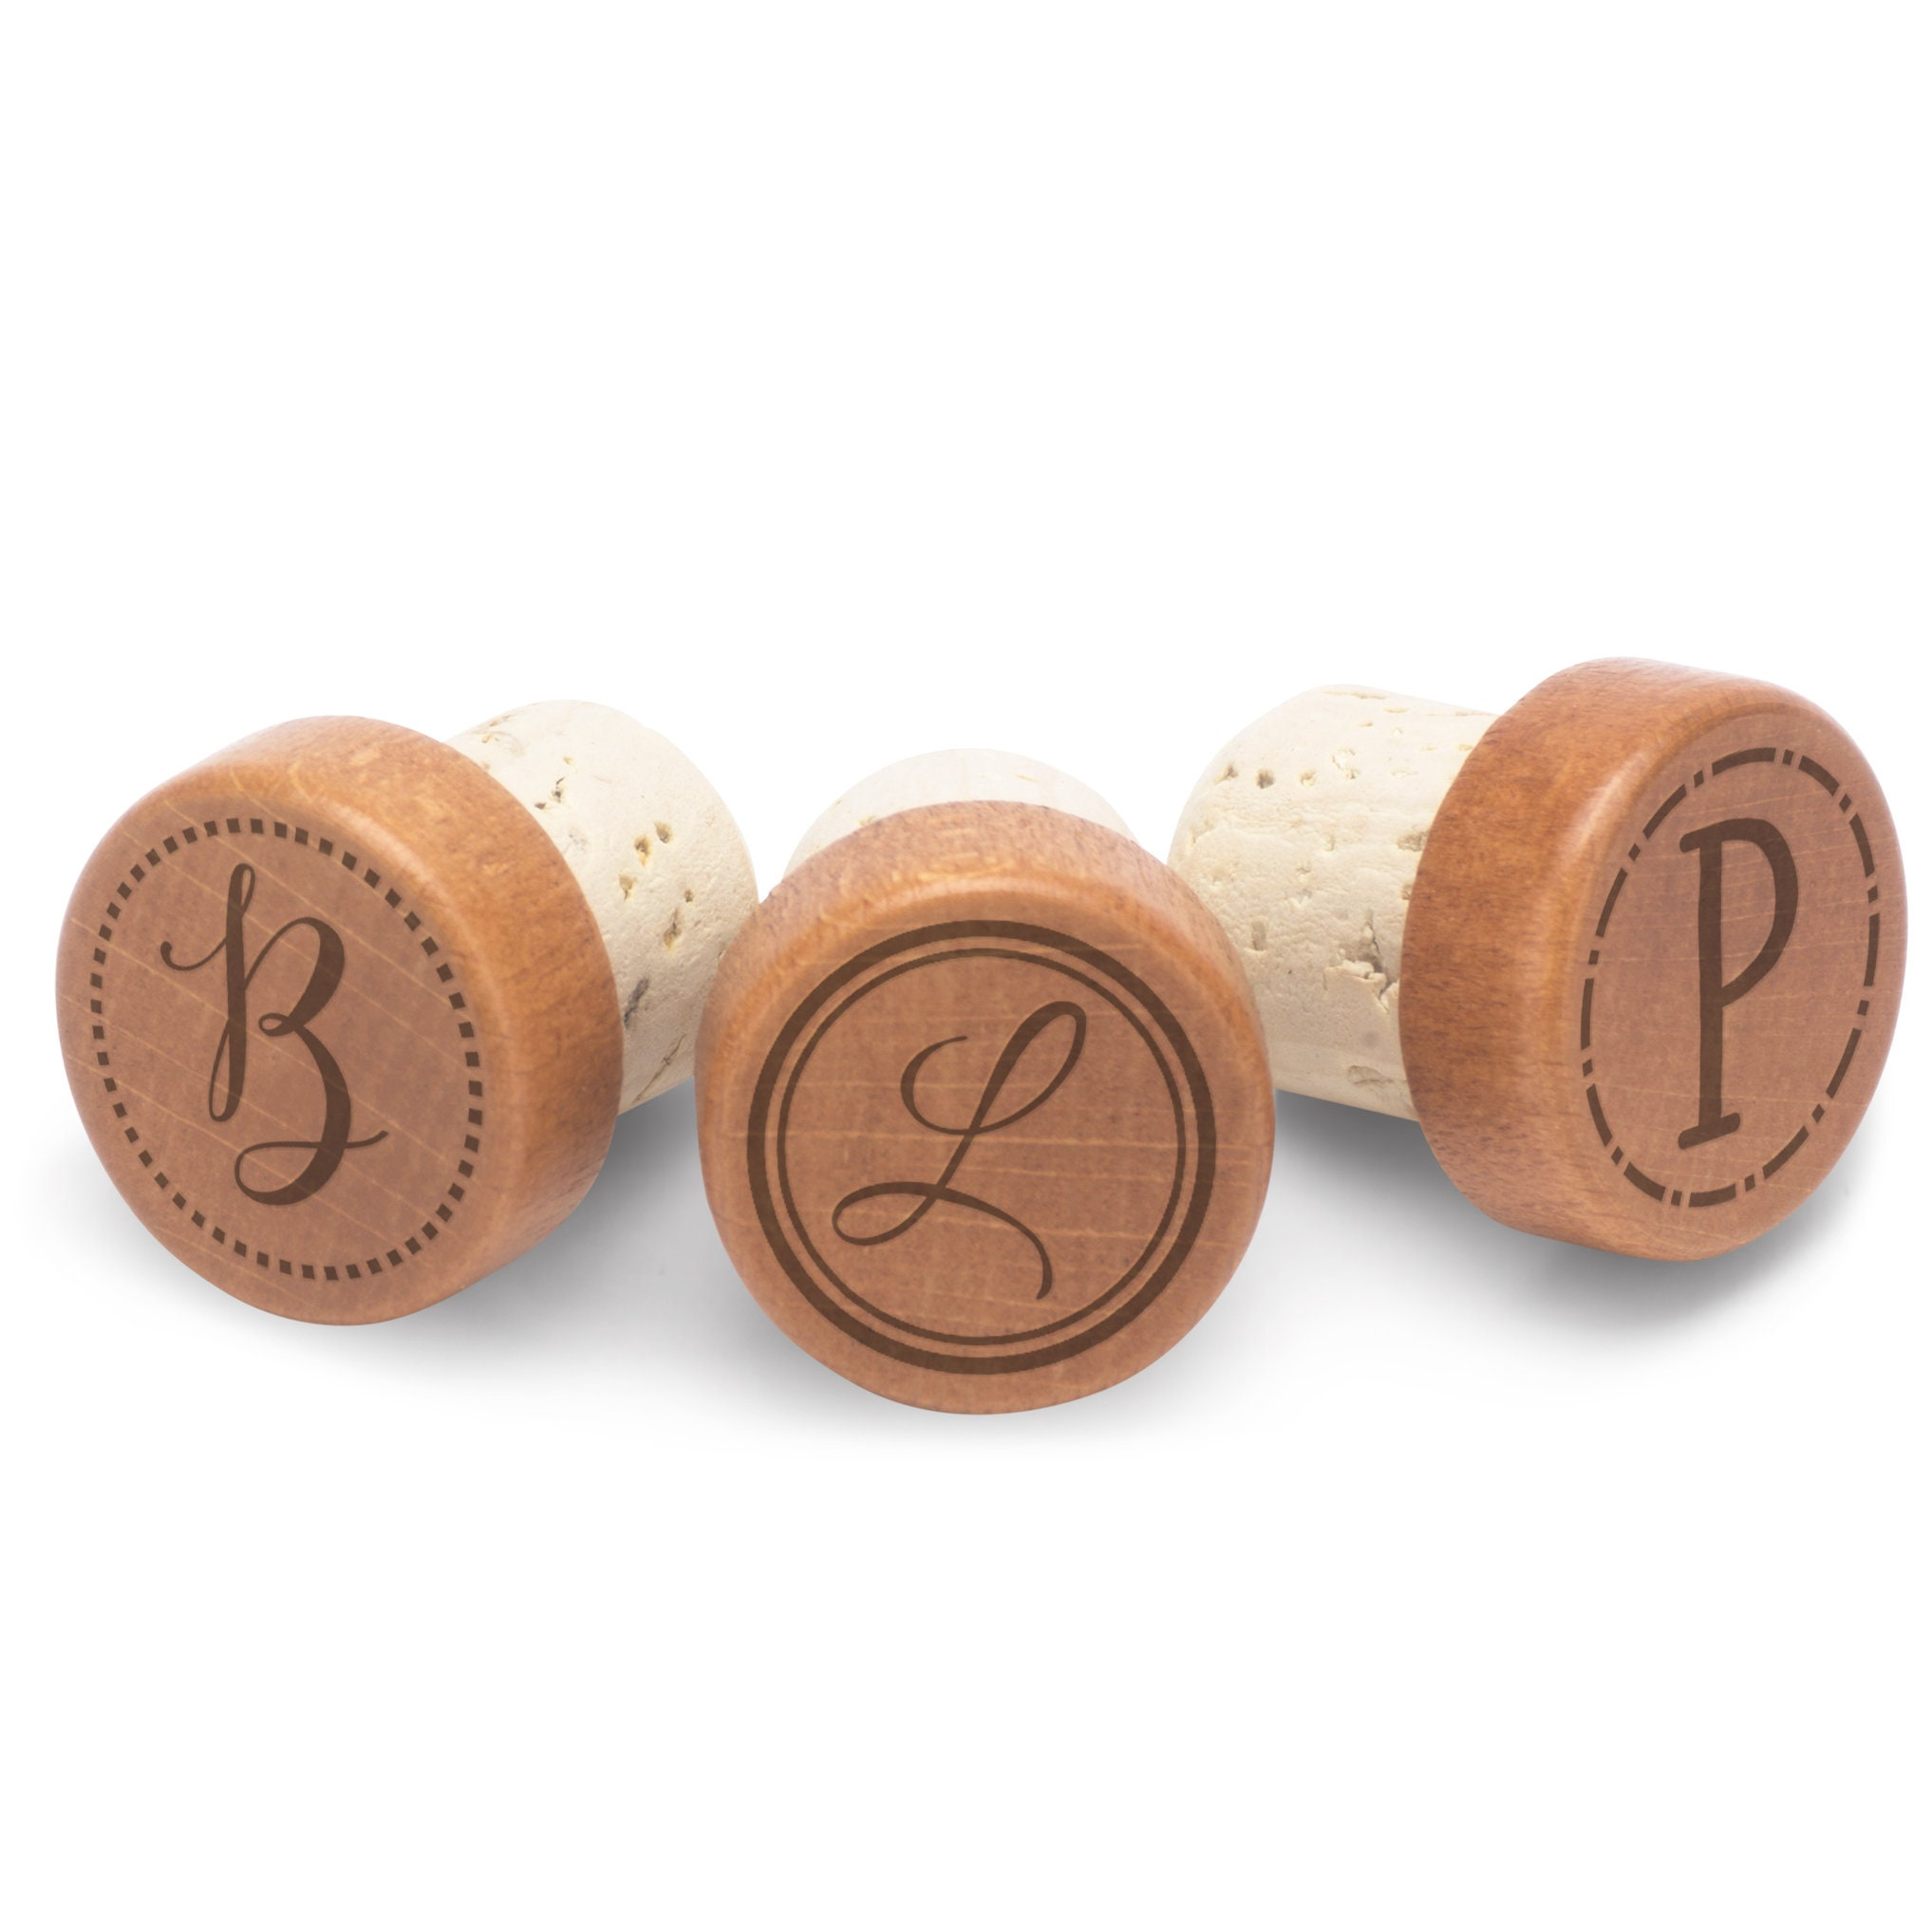 Monogrammed Wooden Wine Stopper Favors Gifts Birthday